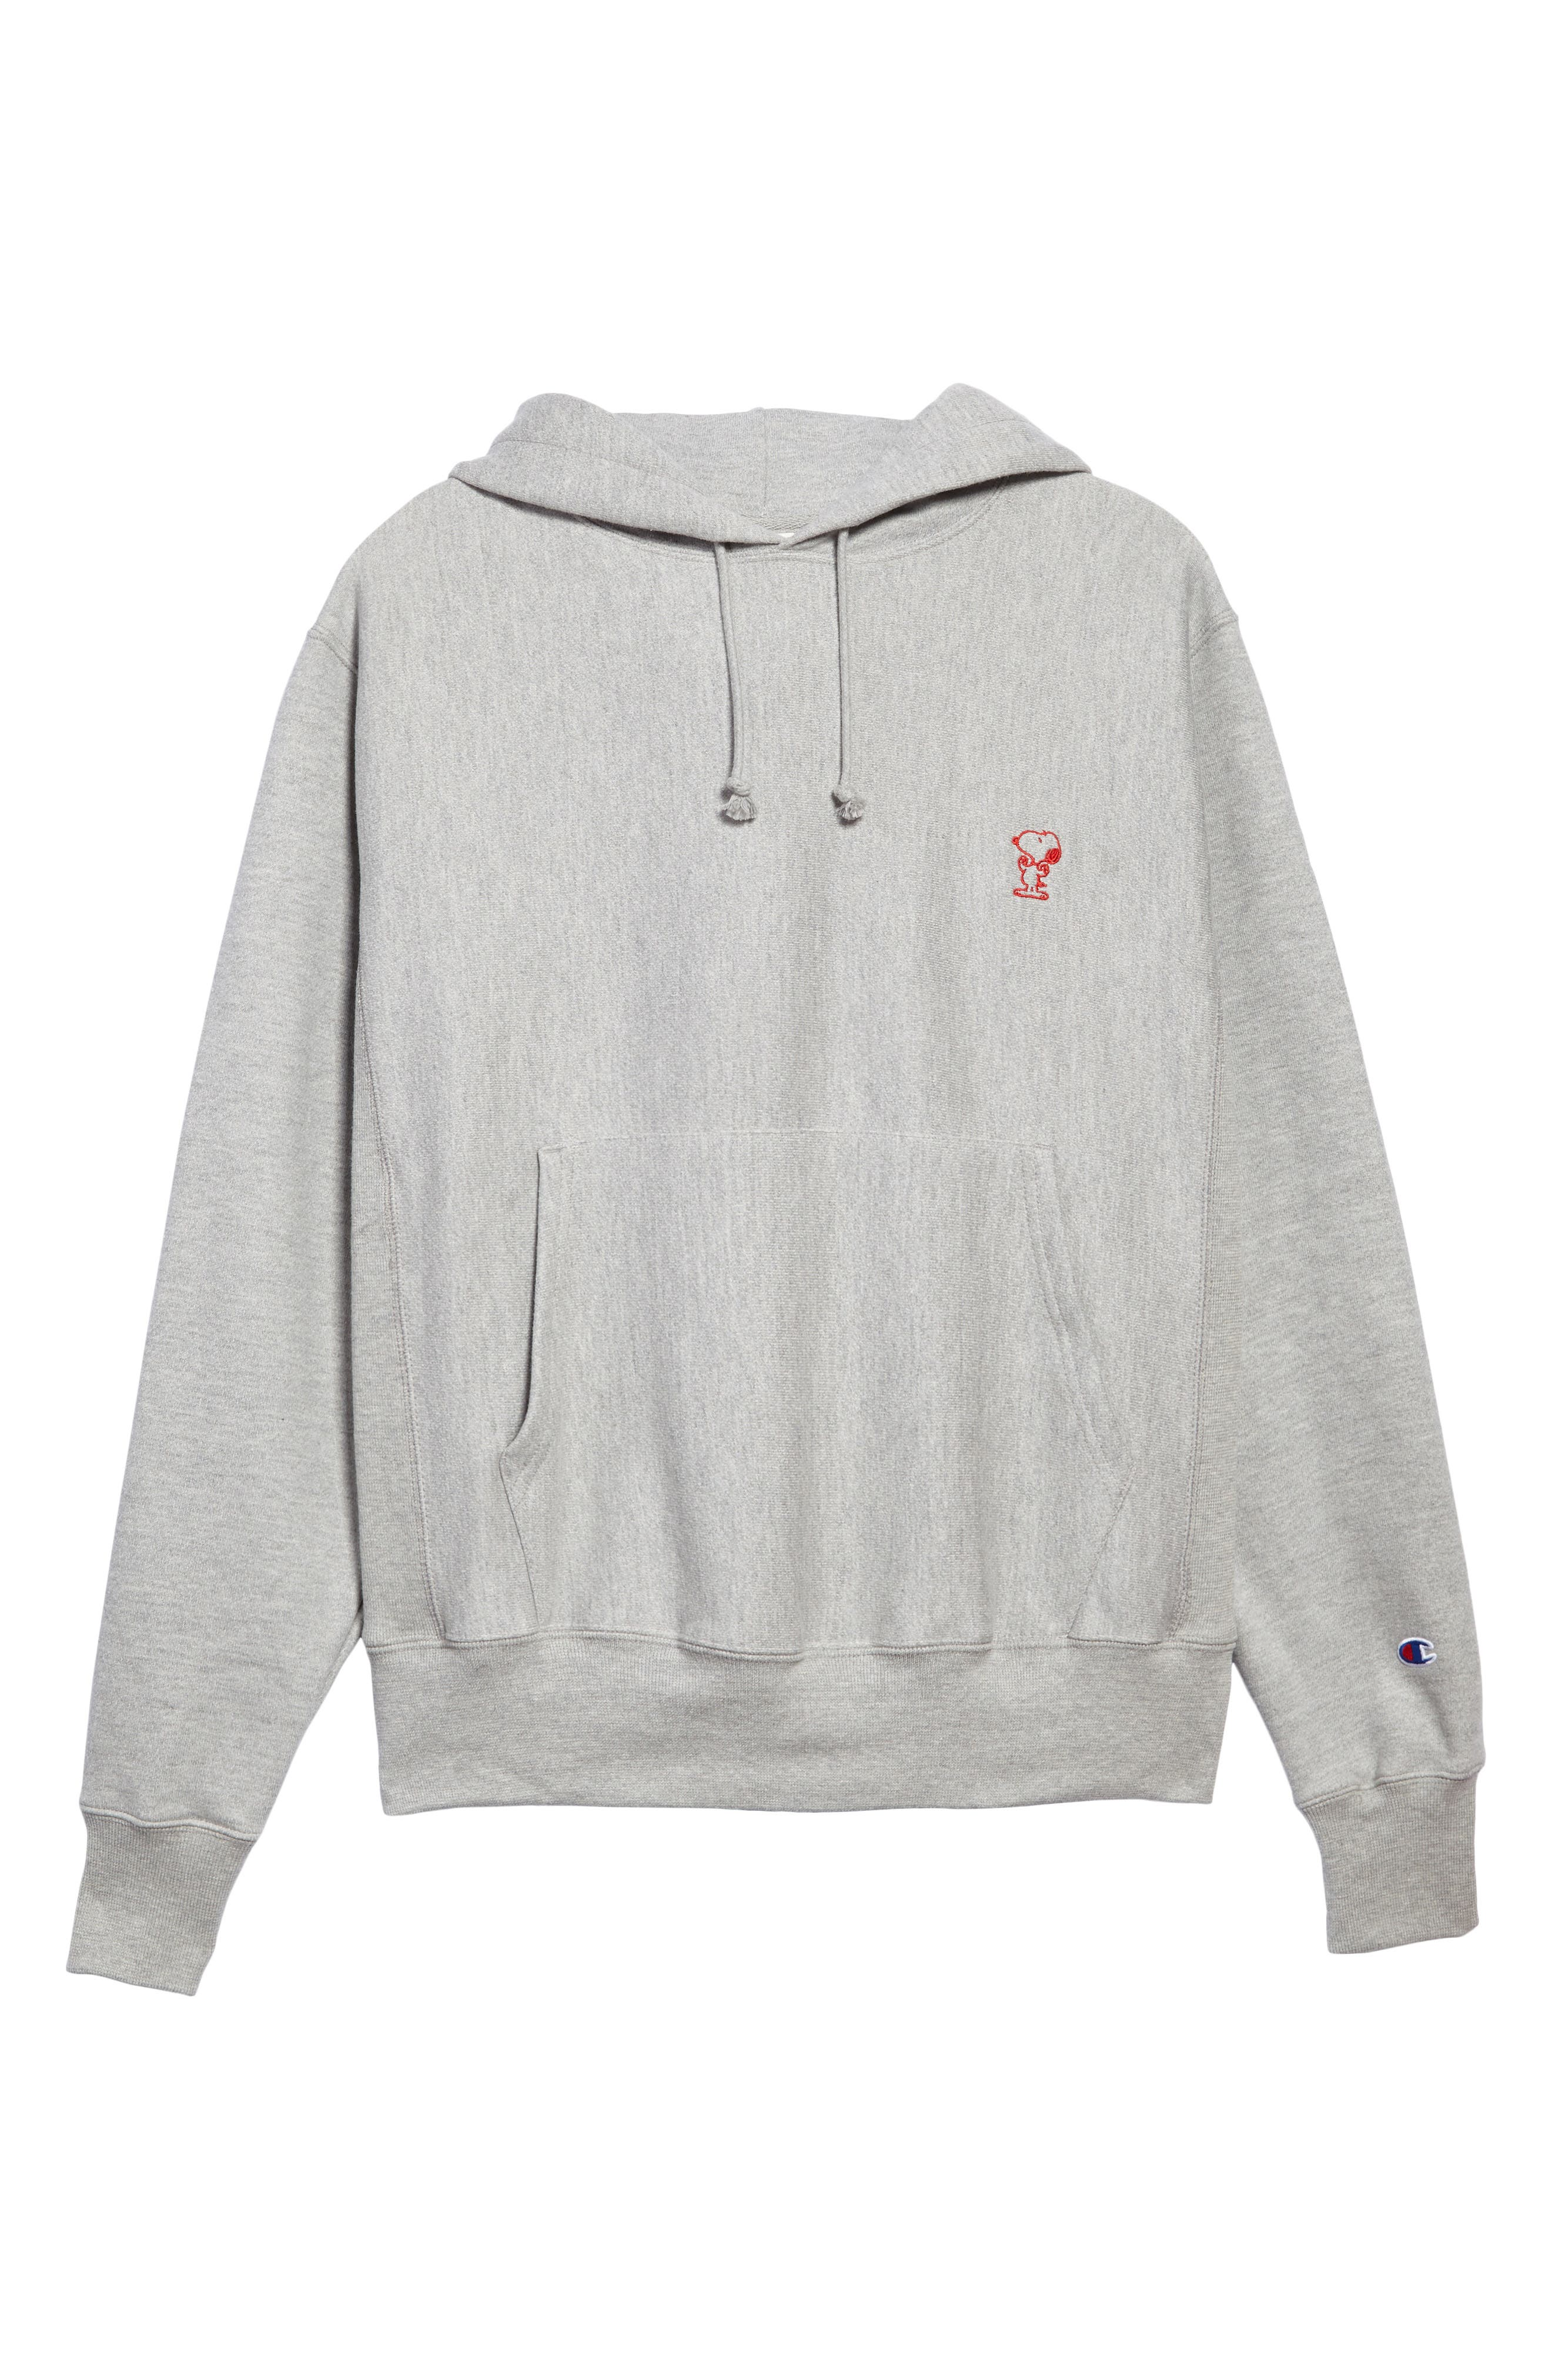 Champion Snoopy Unisex Pullover Hoodie (Limited Edition) (Nordstrom Exclusive)